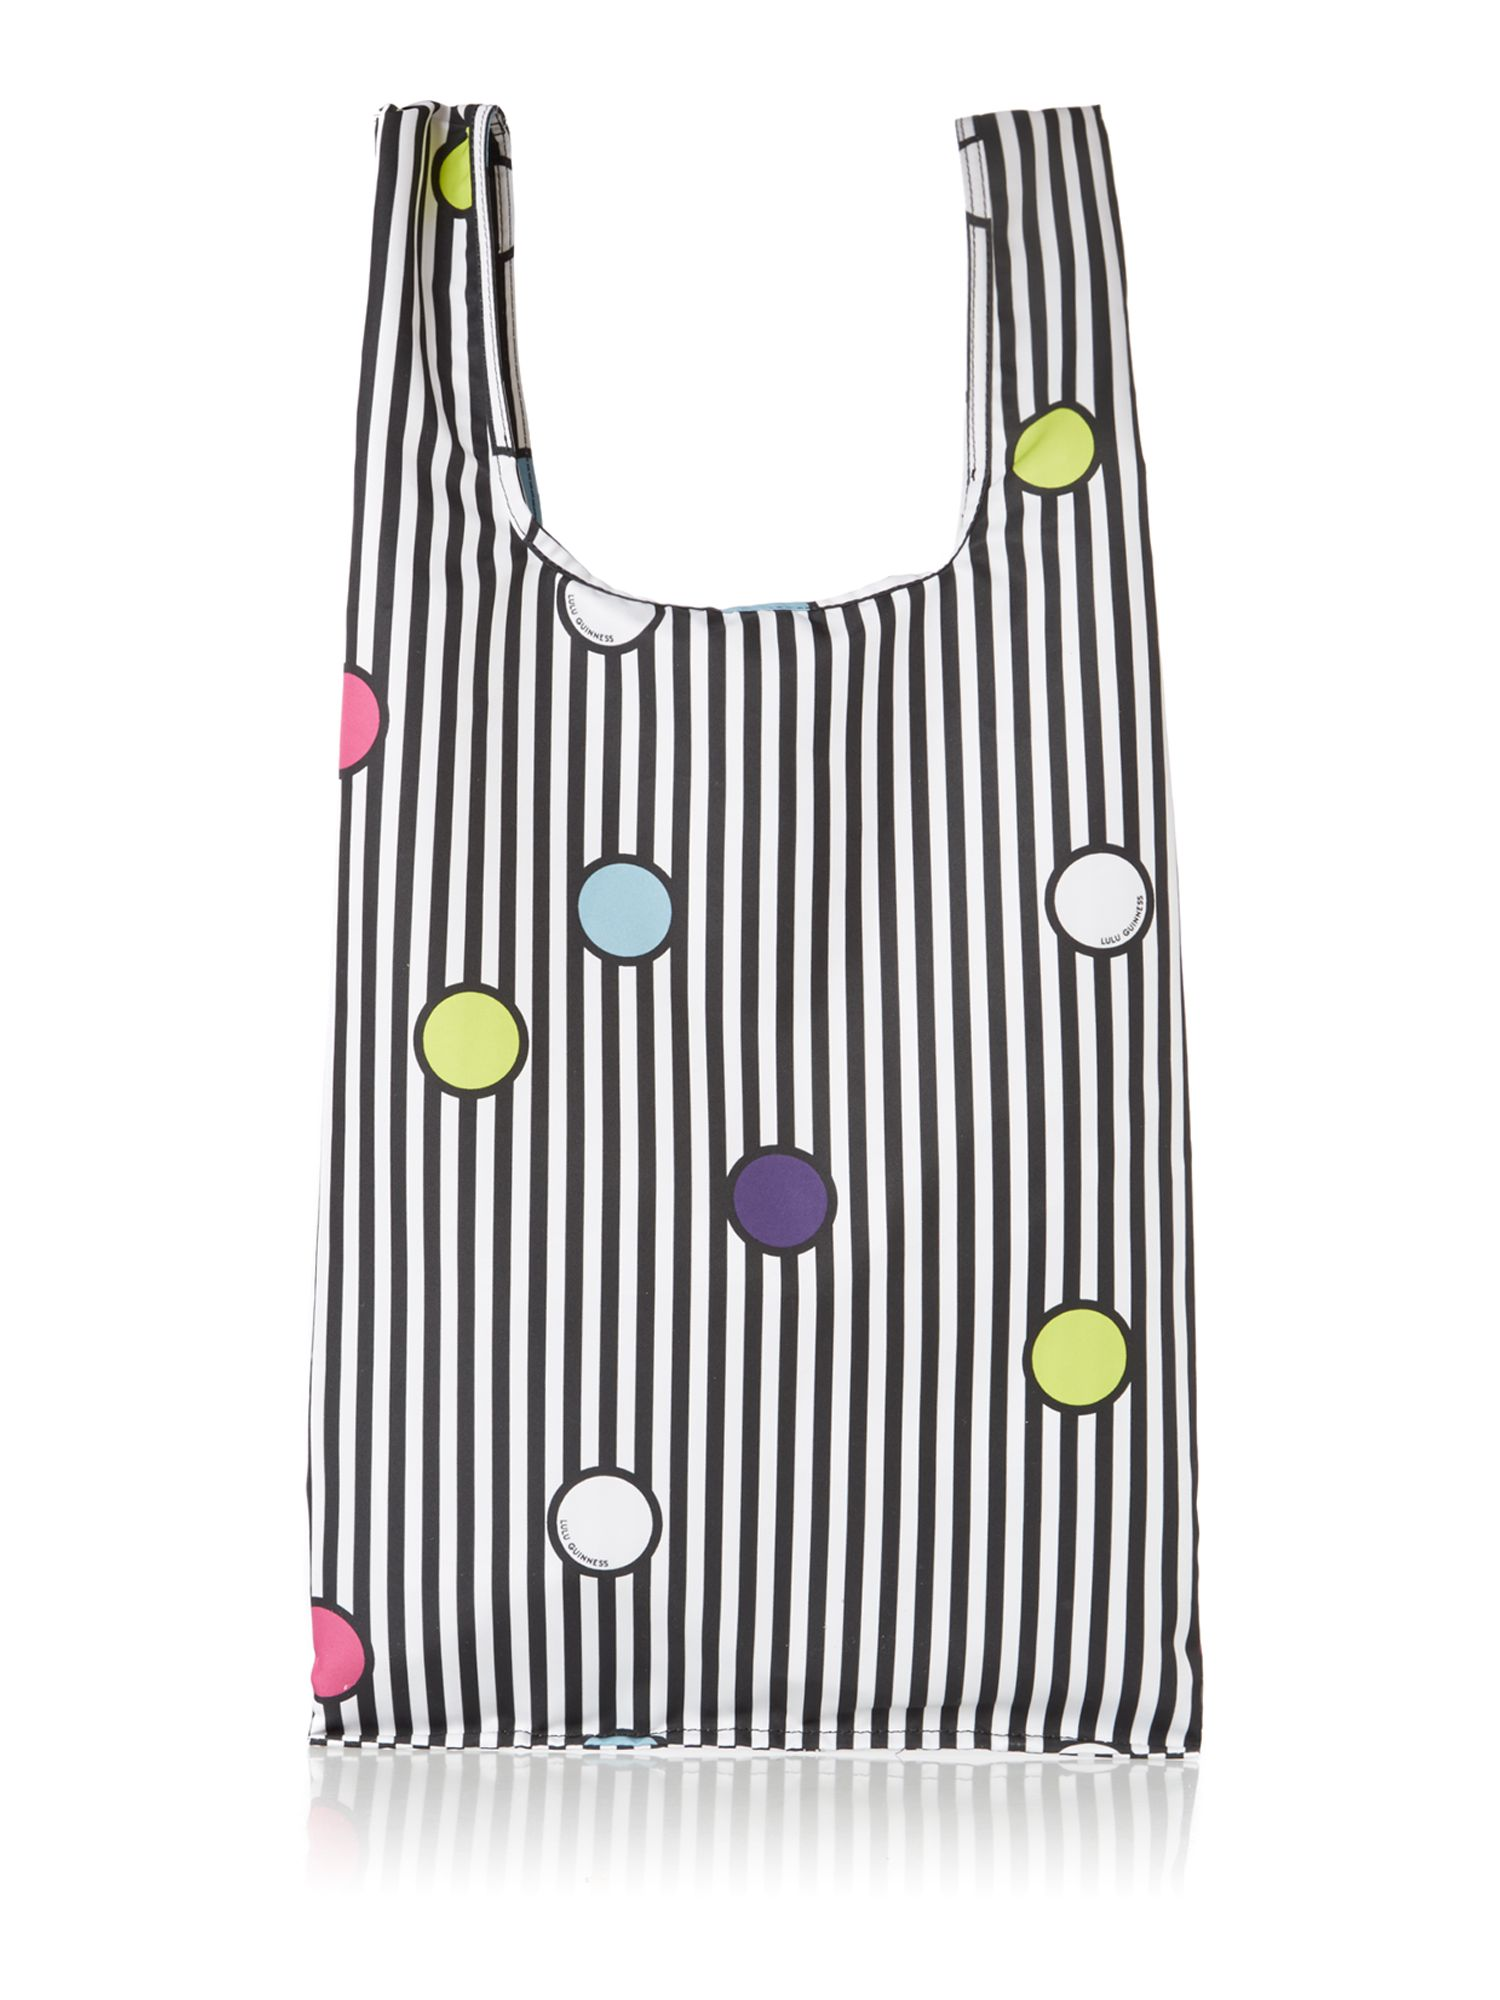 Multi-coloured spot tote bag